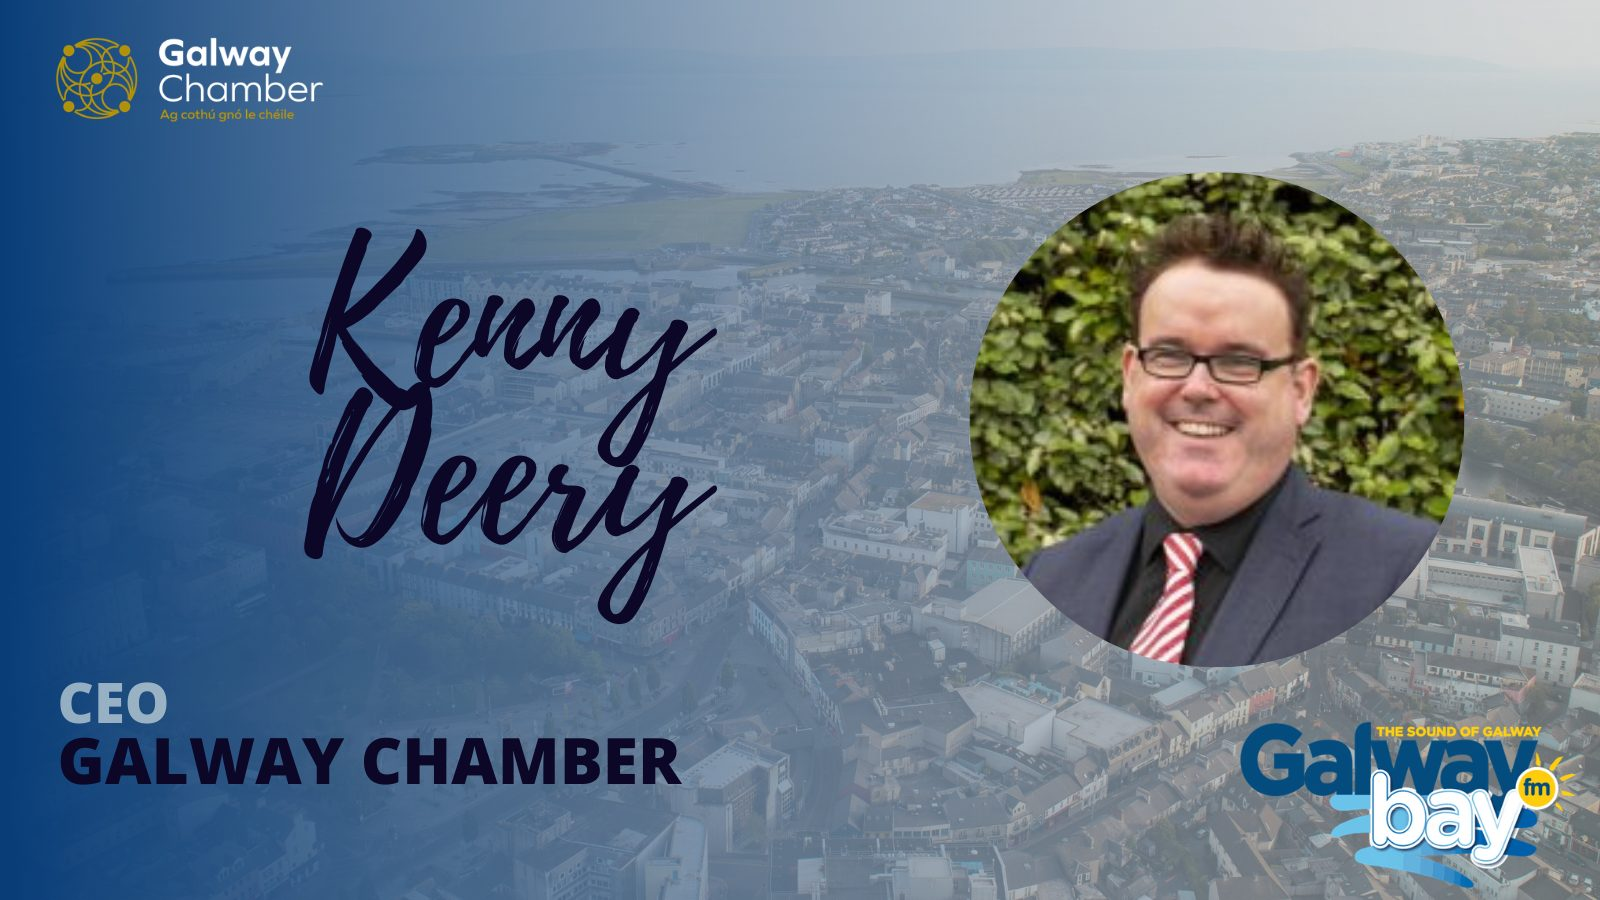 GALWAY CHAMBER COMMITTEE CHAIRS